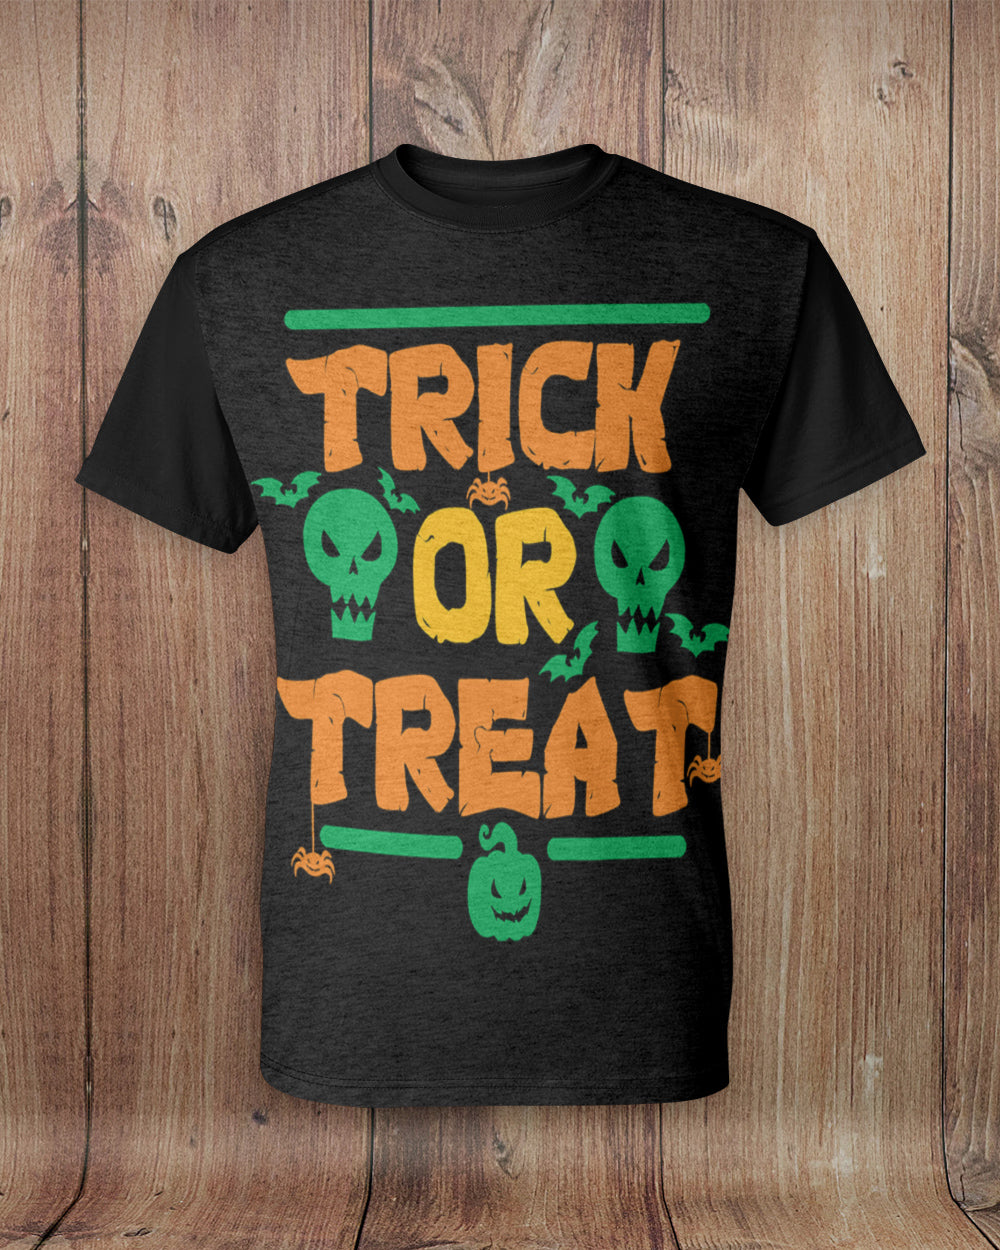 Trick or Treat All Over Print T-Shirt